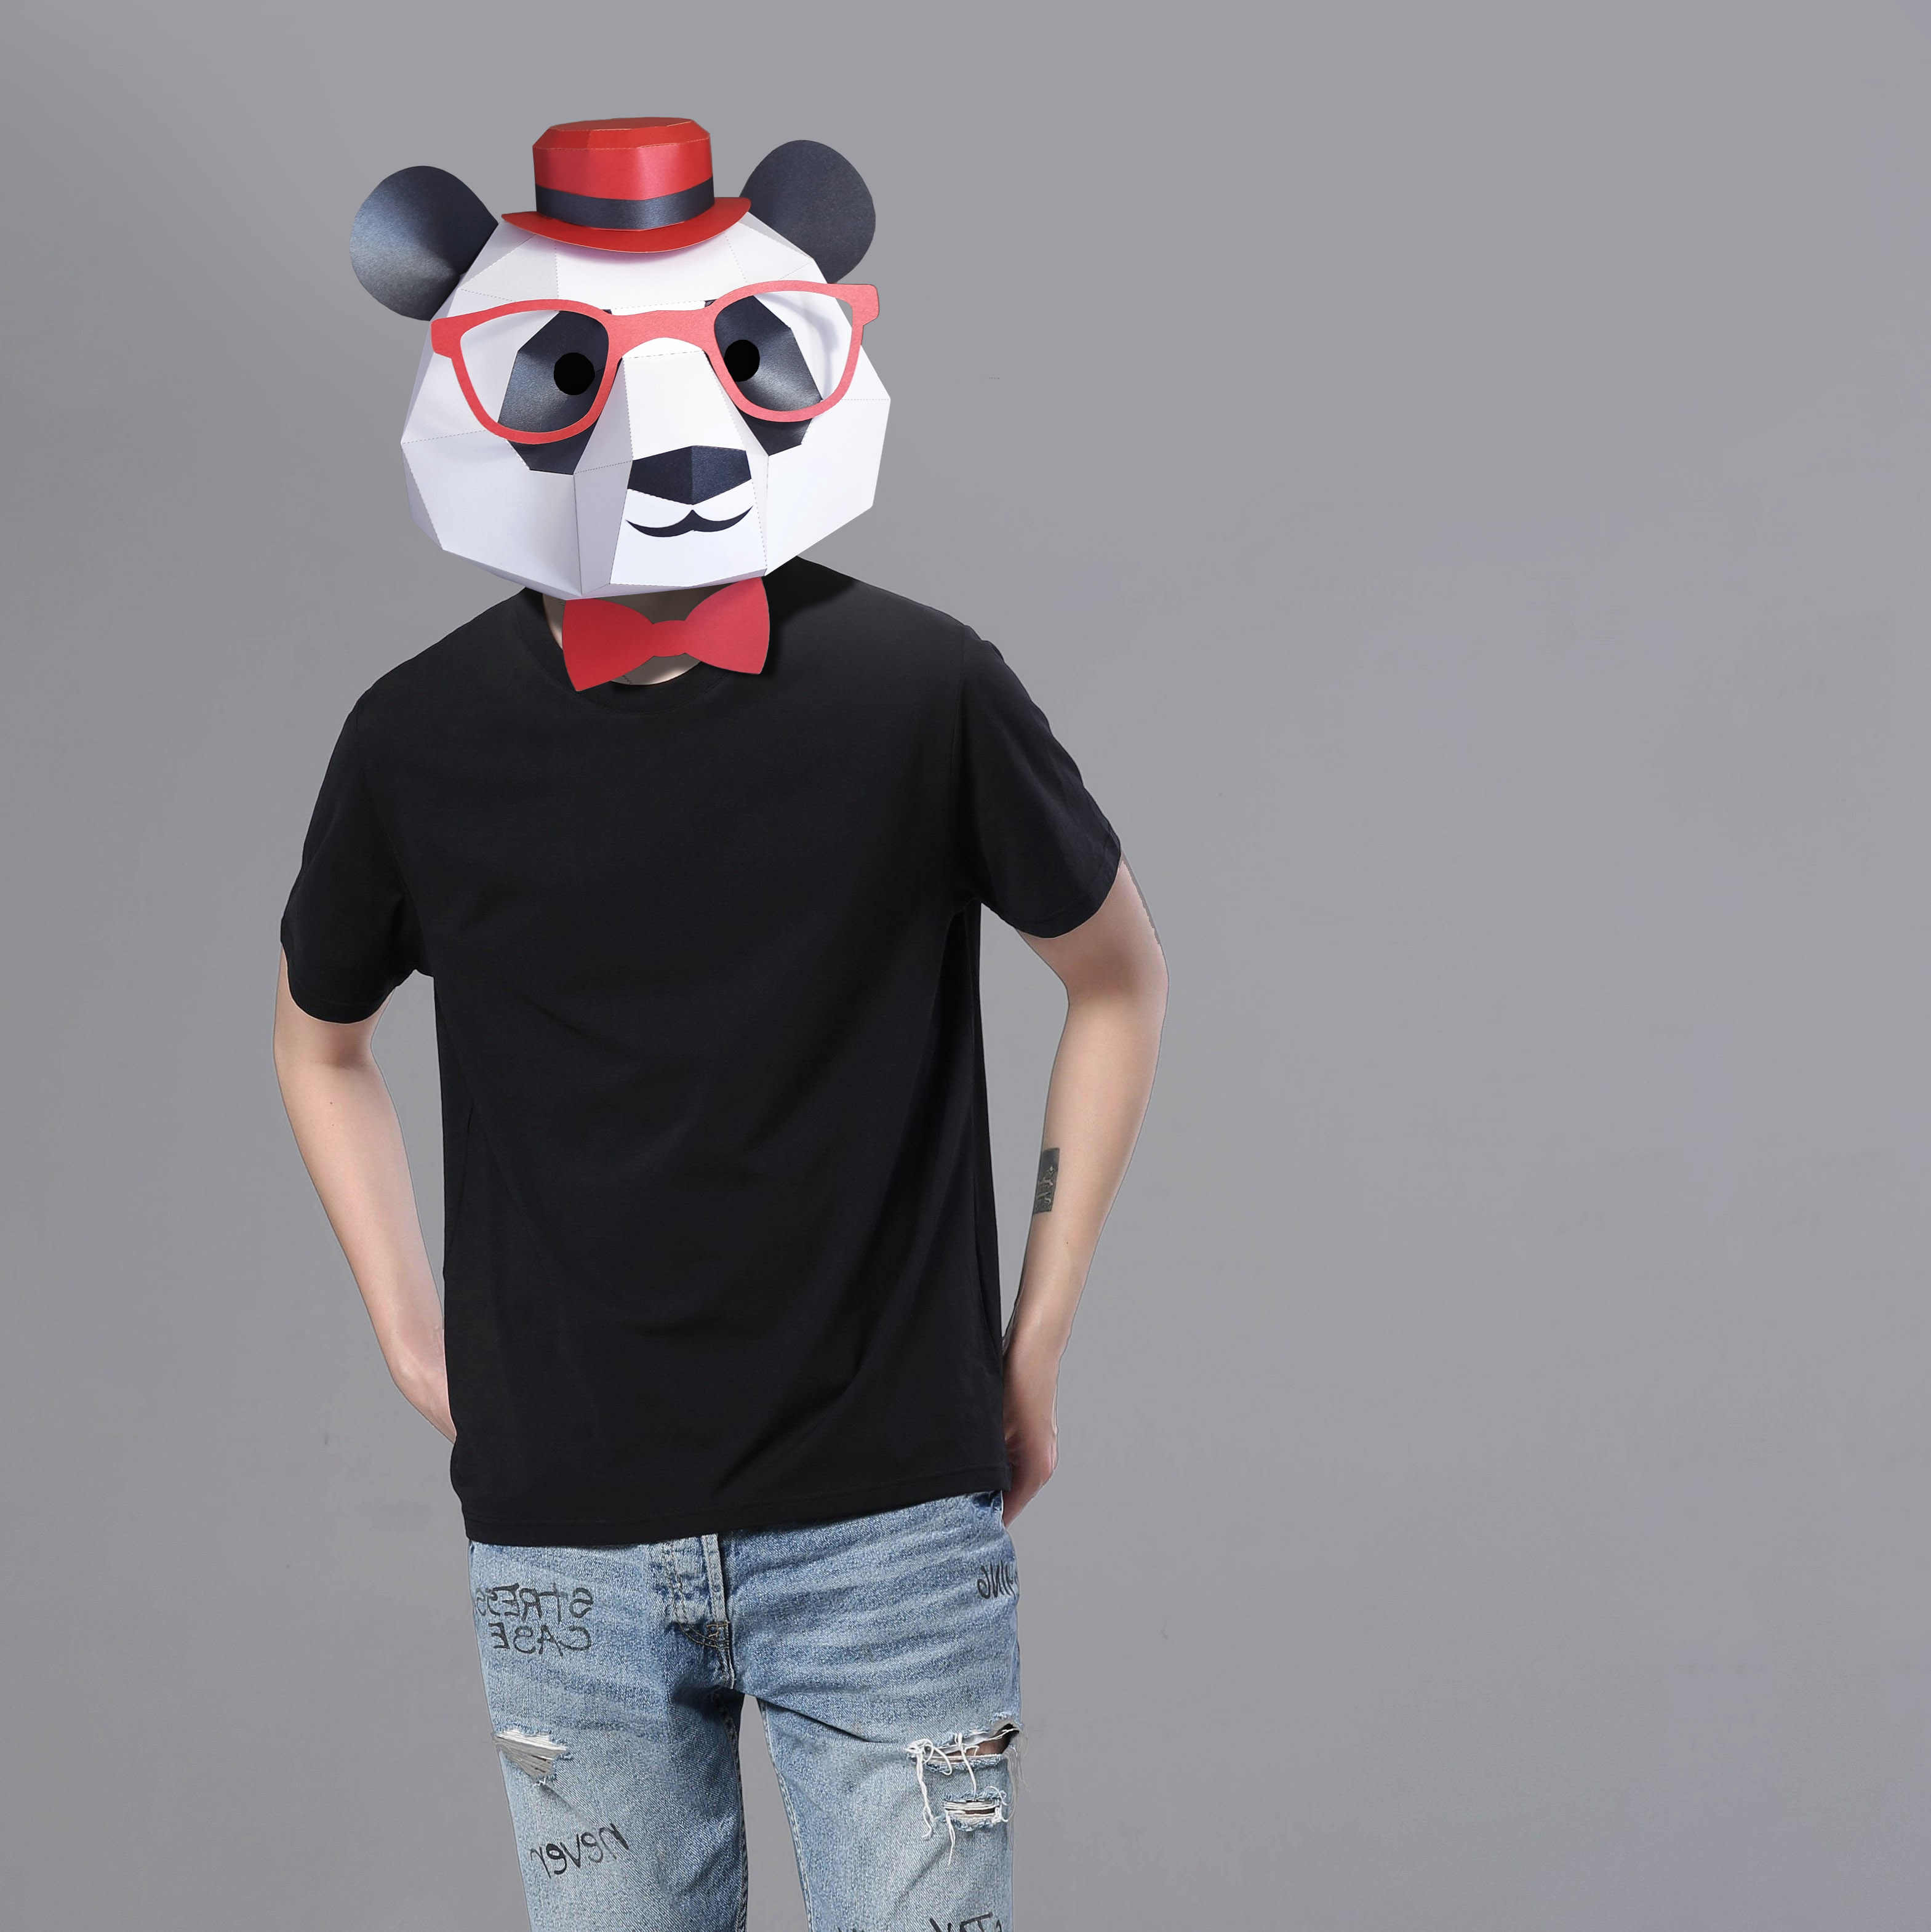 3D Paper Mask Fashion Panda Mask Animal Costume Cosplay DIY Paper Craft Model Mask Christmas Halloween Prom Party Gift